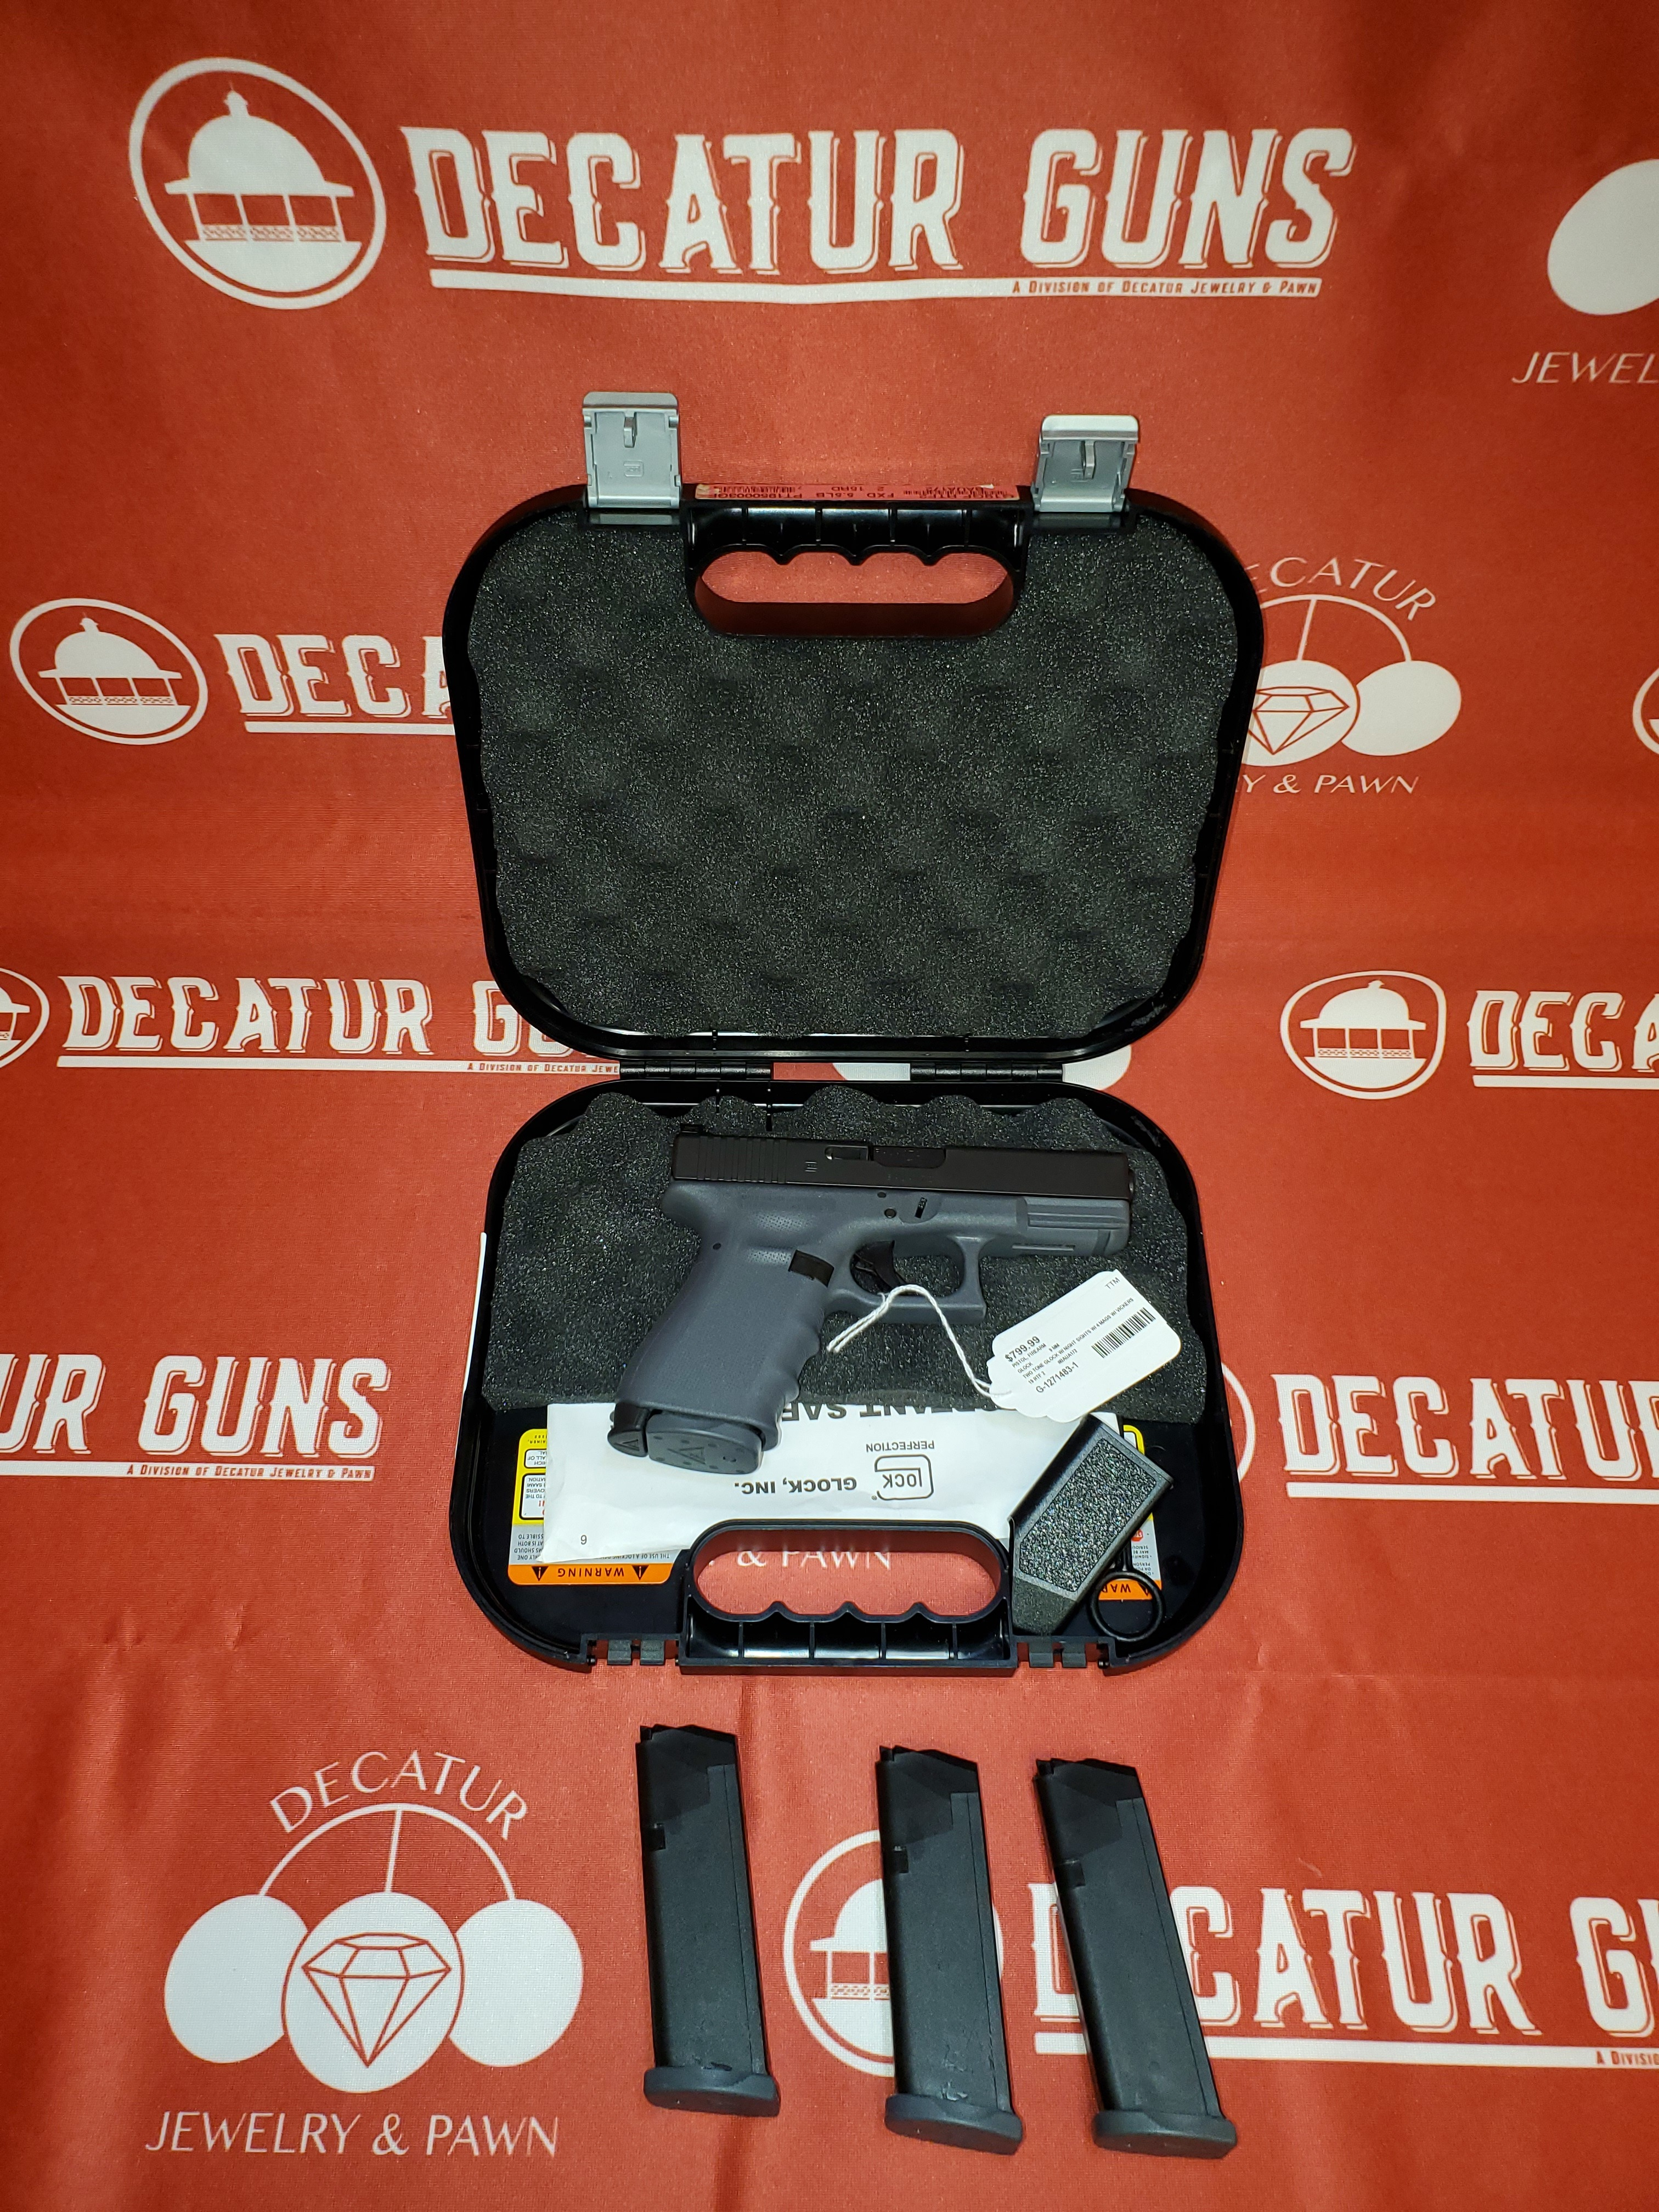 GLOCK 19 RTF 2 Two-Tone 9mm PISTOL with Night Sights, 4 Mags & Vickers